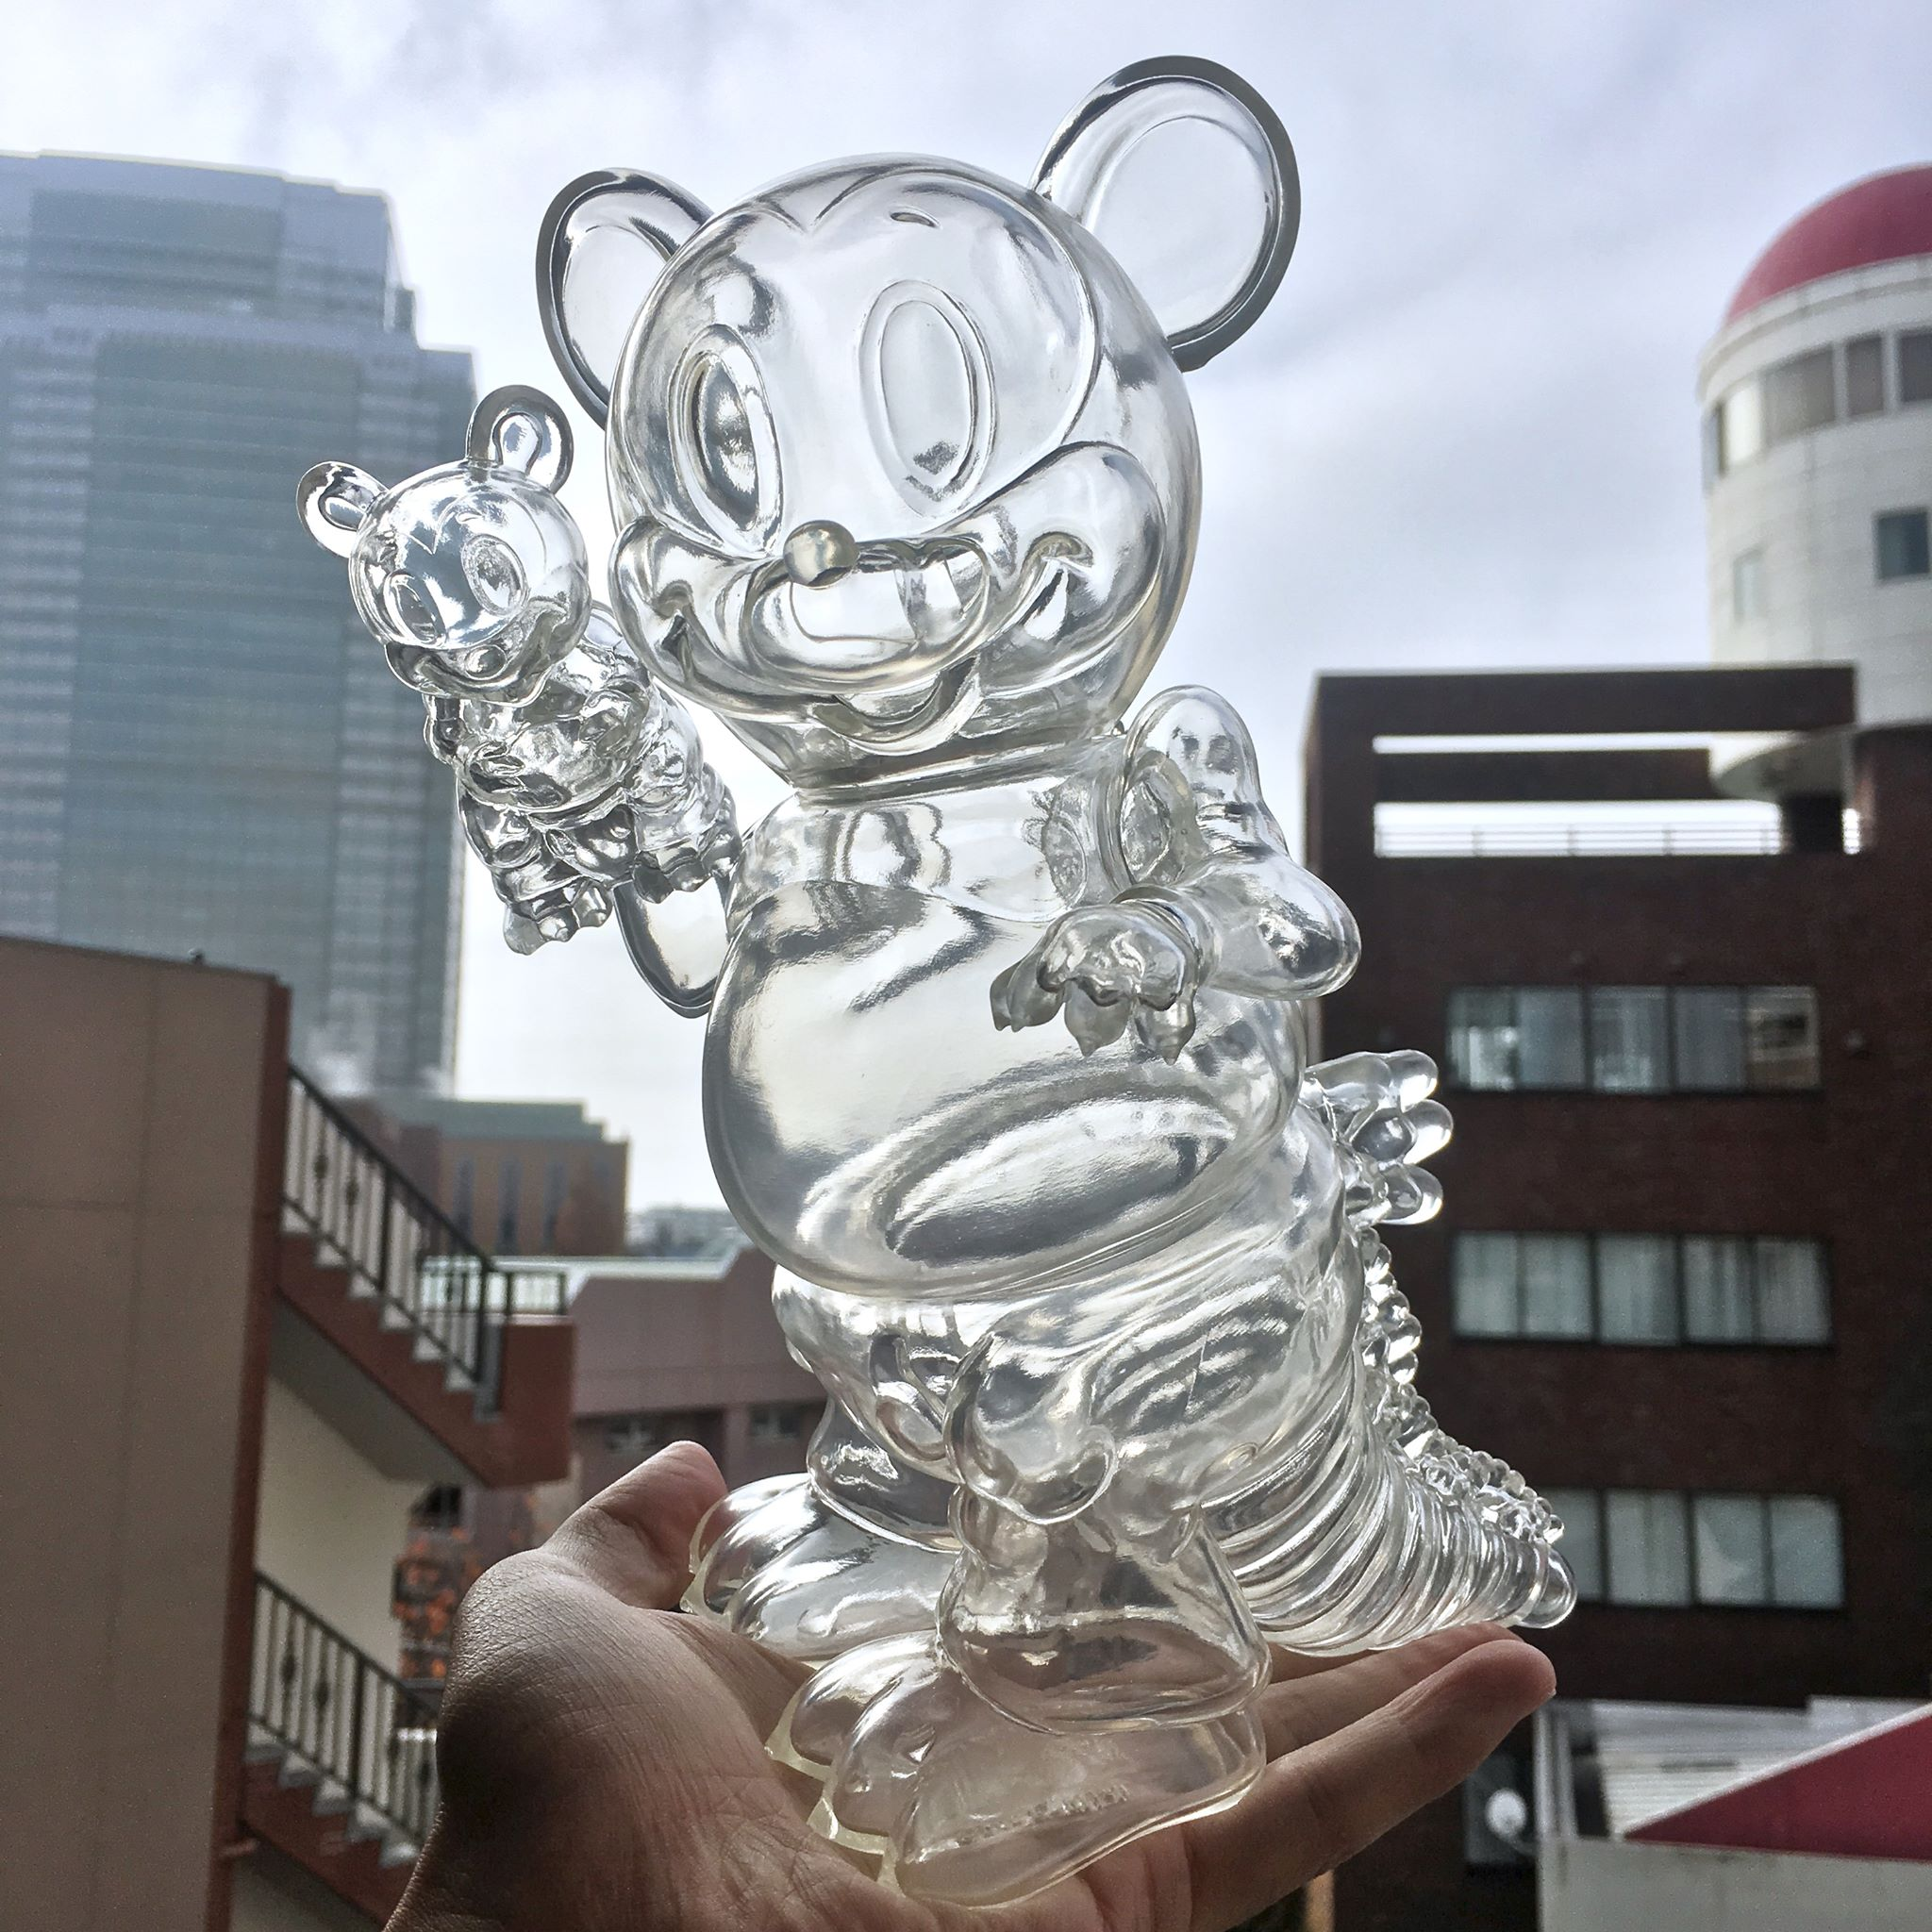 Ron English x BlackBook Toy( ロン・イングリッシュ) Mousezilla Stealth with mini